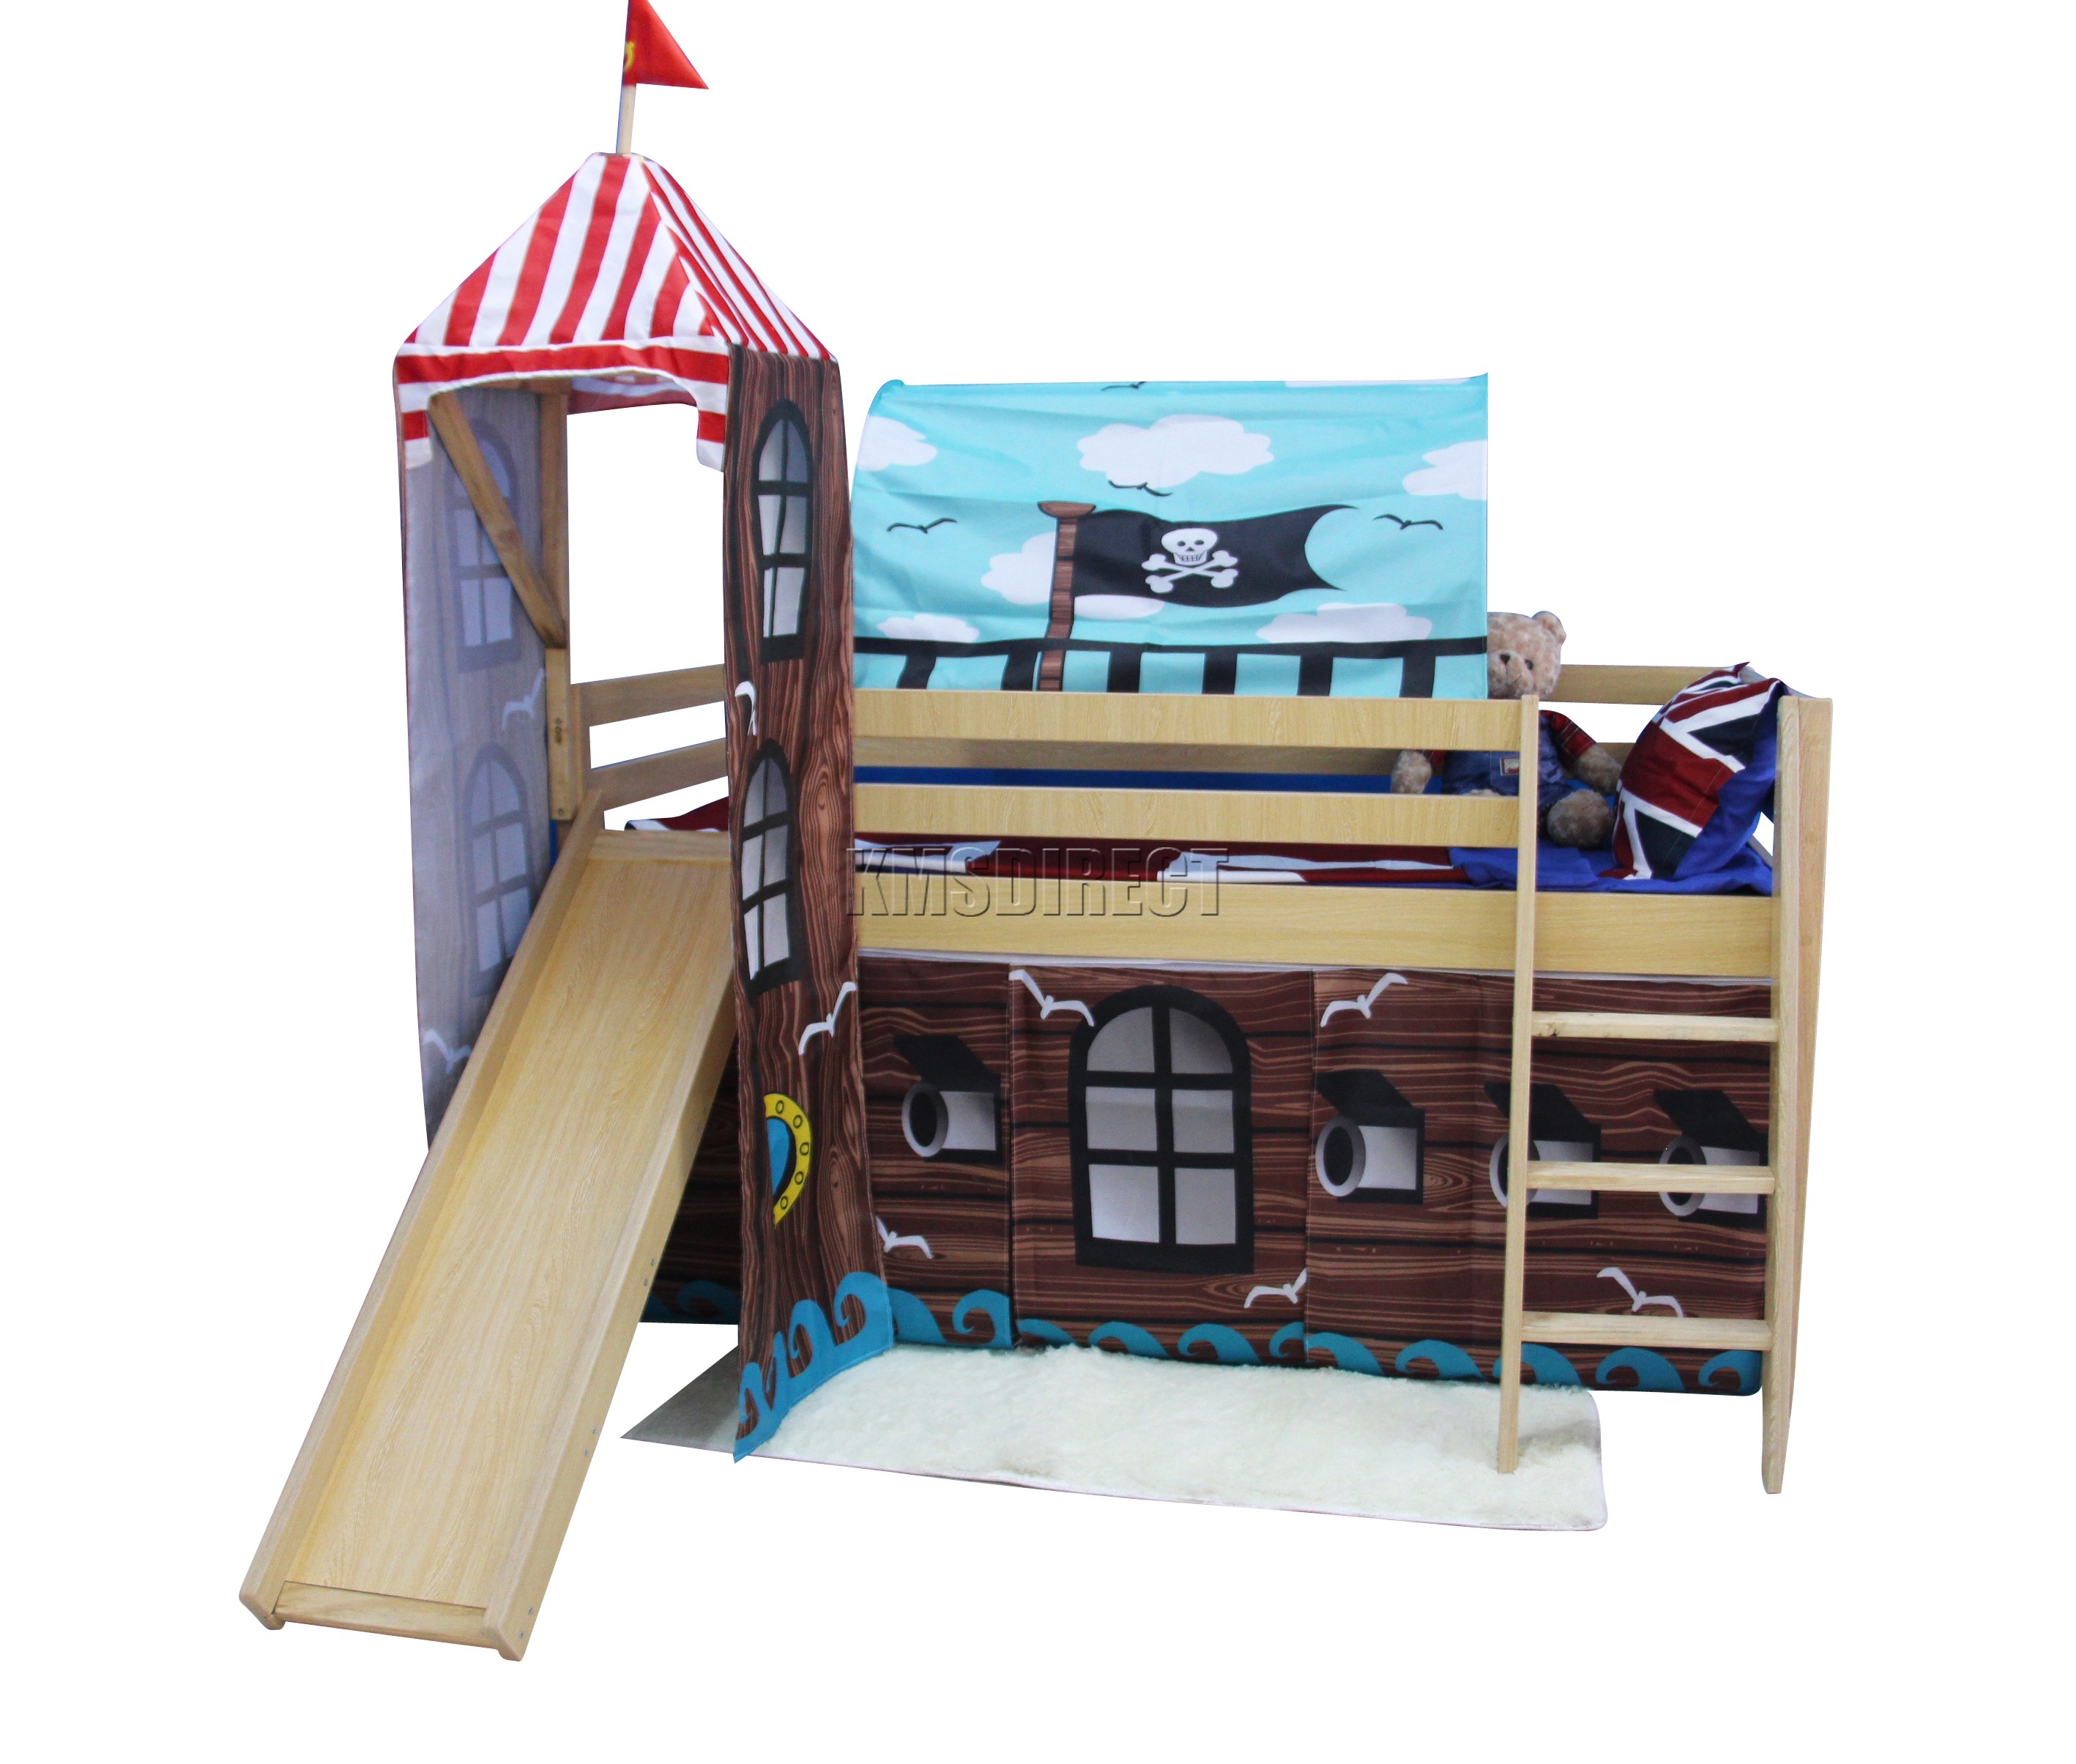 Foxhunter wood mid sleeper cabin bunk bed kids tent slide for Pirate bed with slide